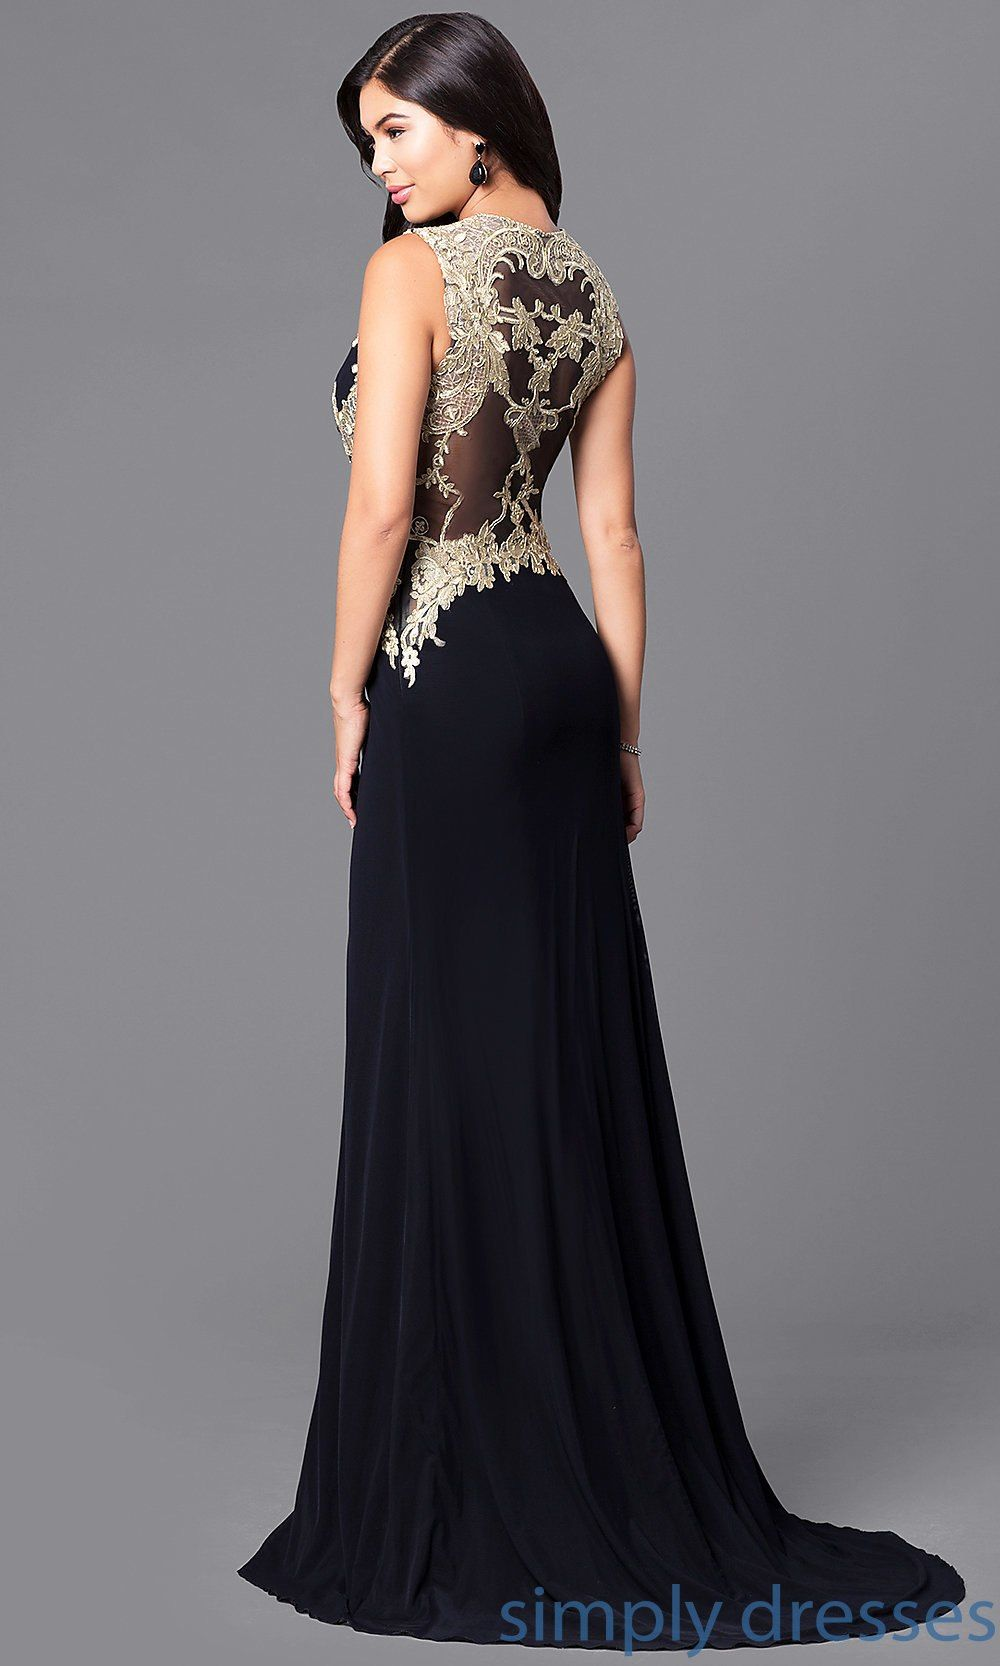 e908fe79dfa Shop long black formal prom dresses at Simply Dresses. Floor-length evening  gowns with gold lace appliques